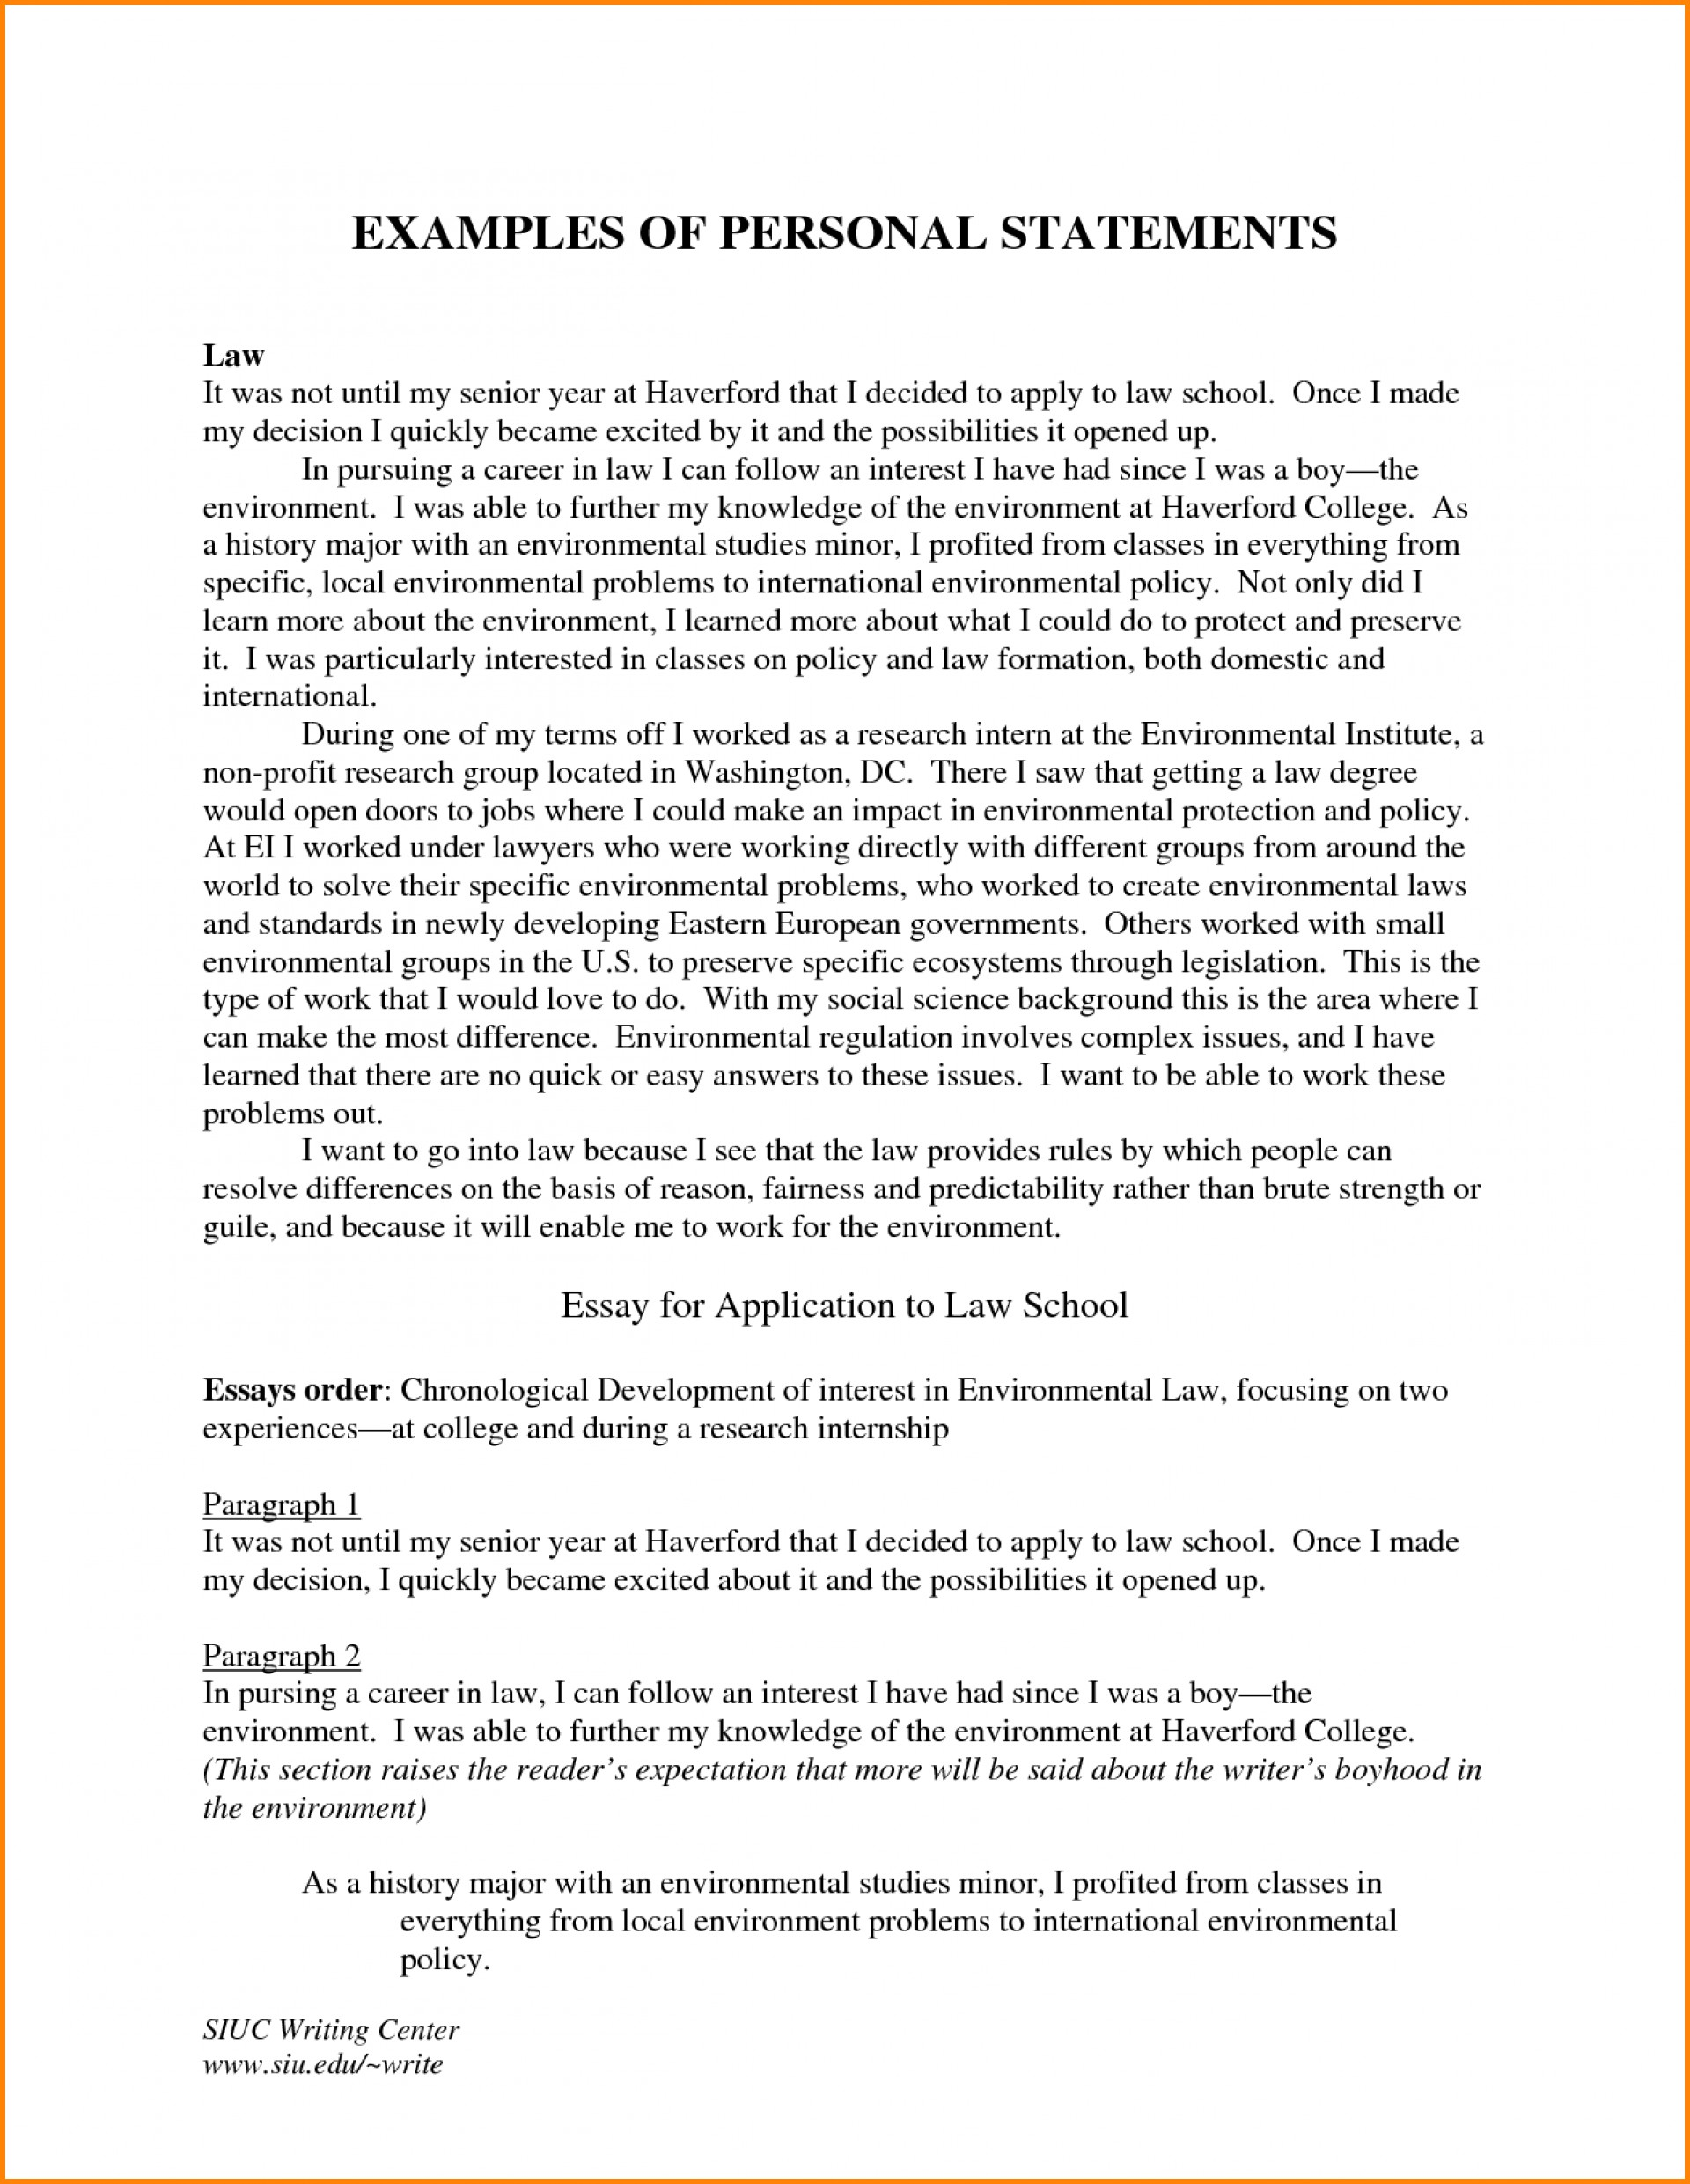 Salient features of a good essay